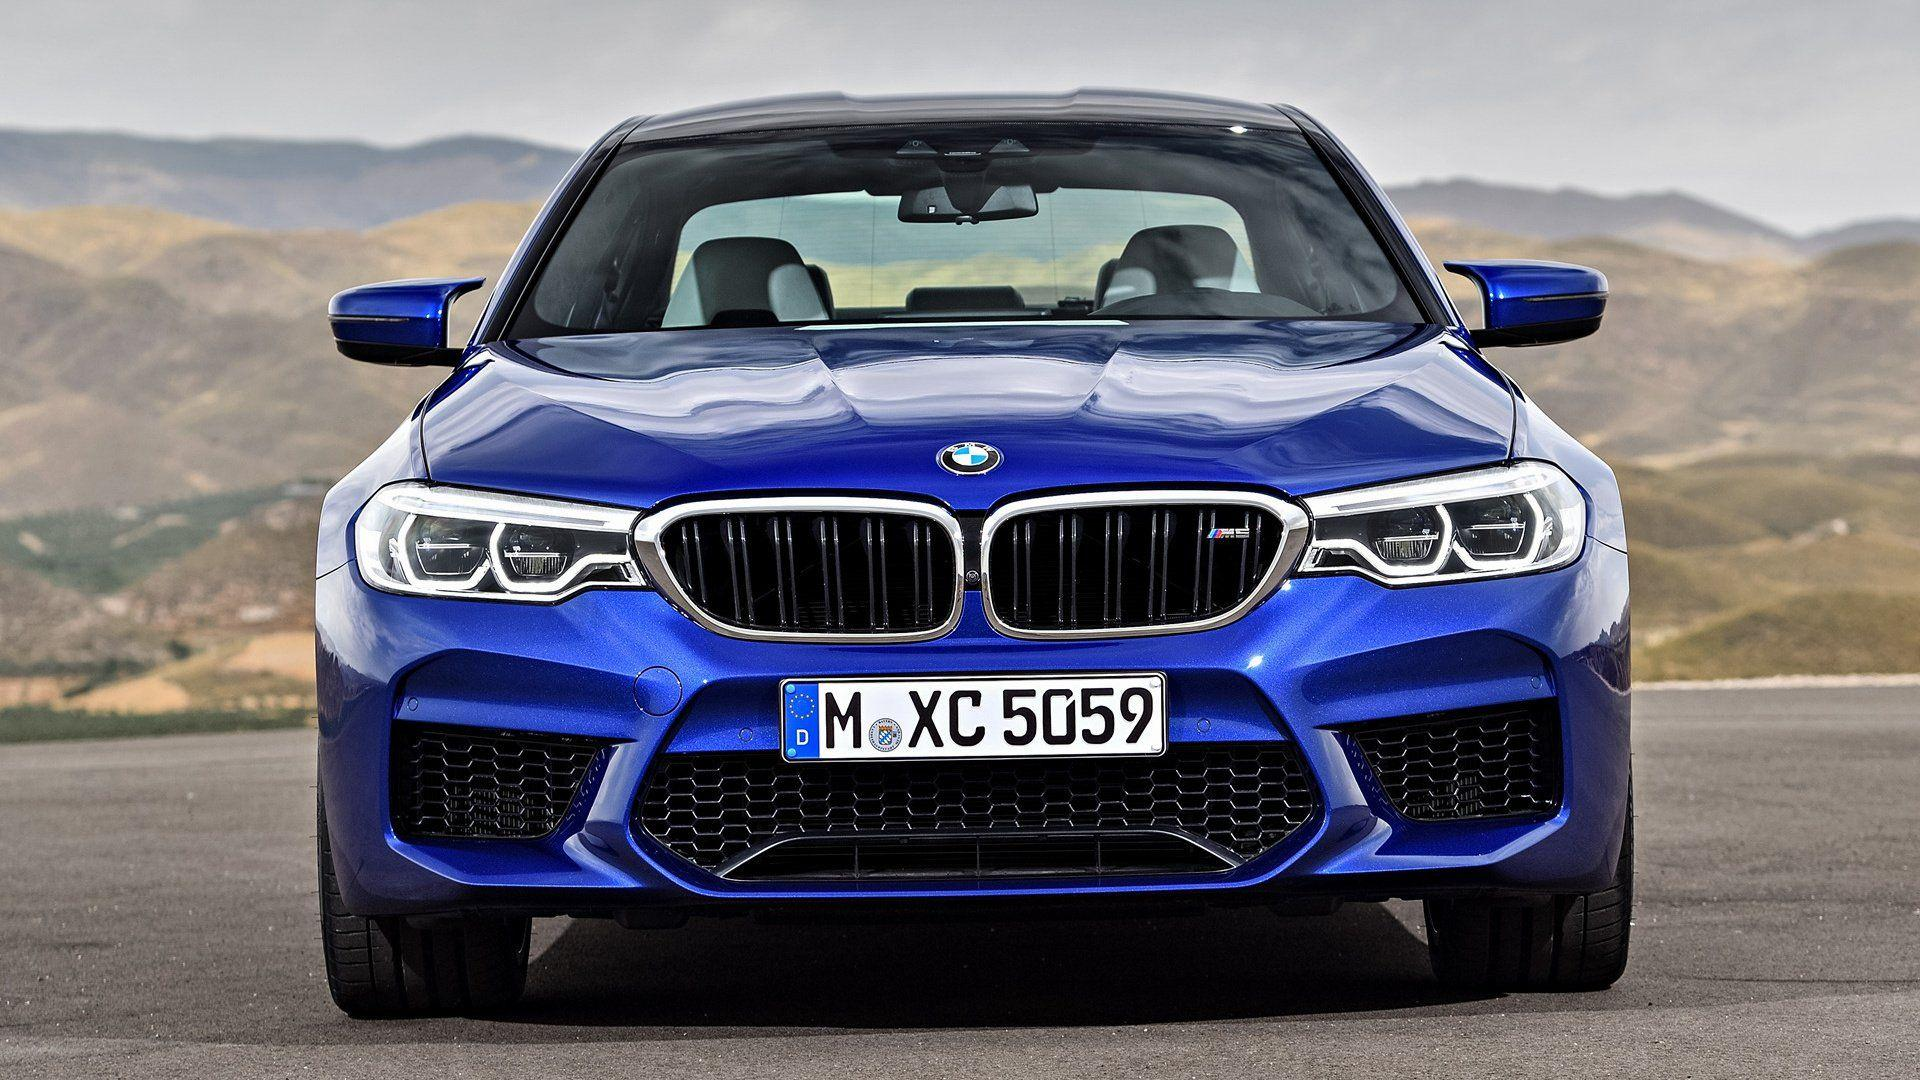 BMW M5 2018 Wallpapers - Wallpaper Cave